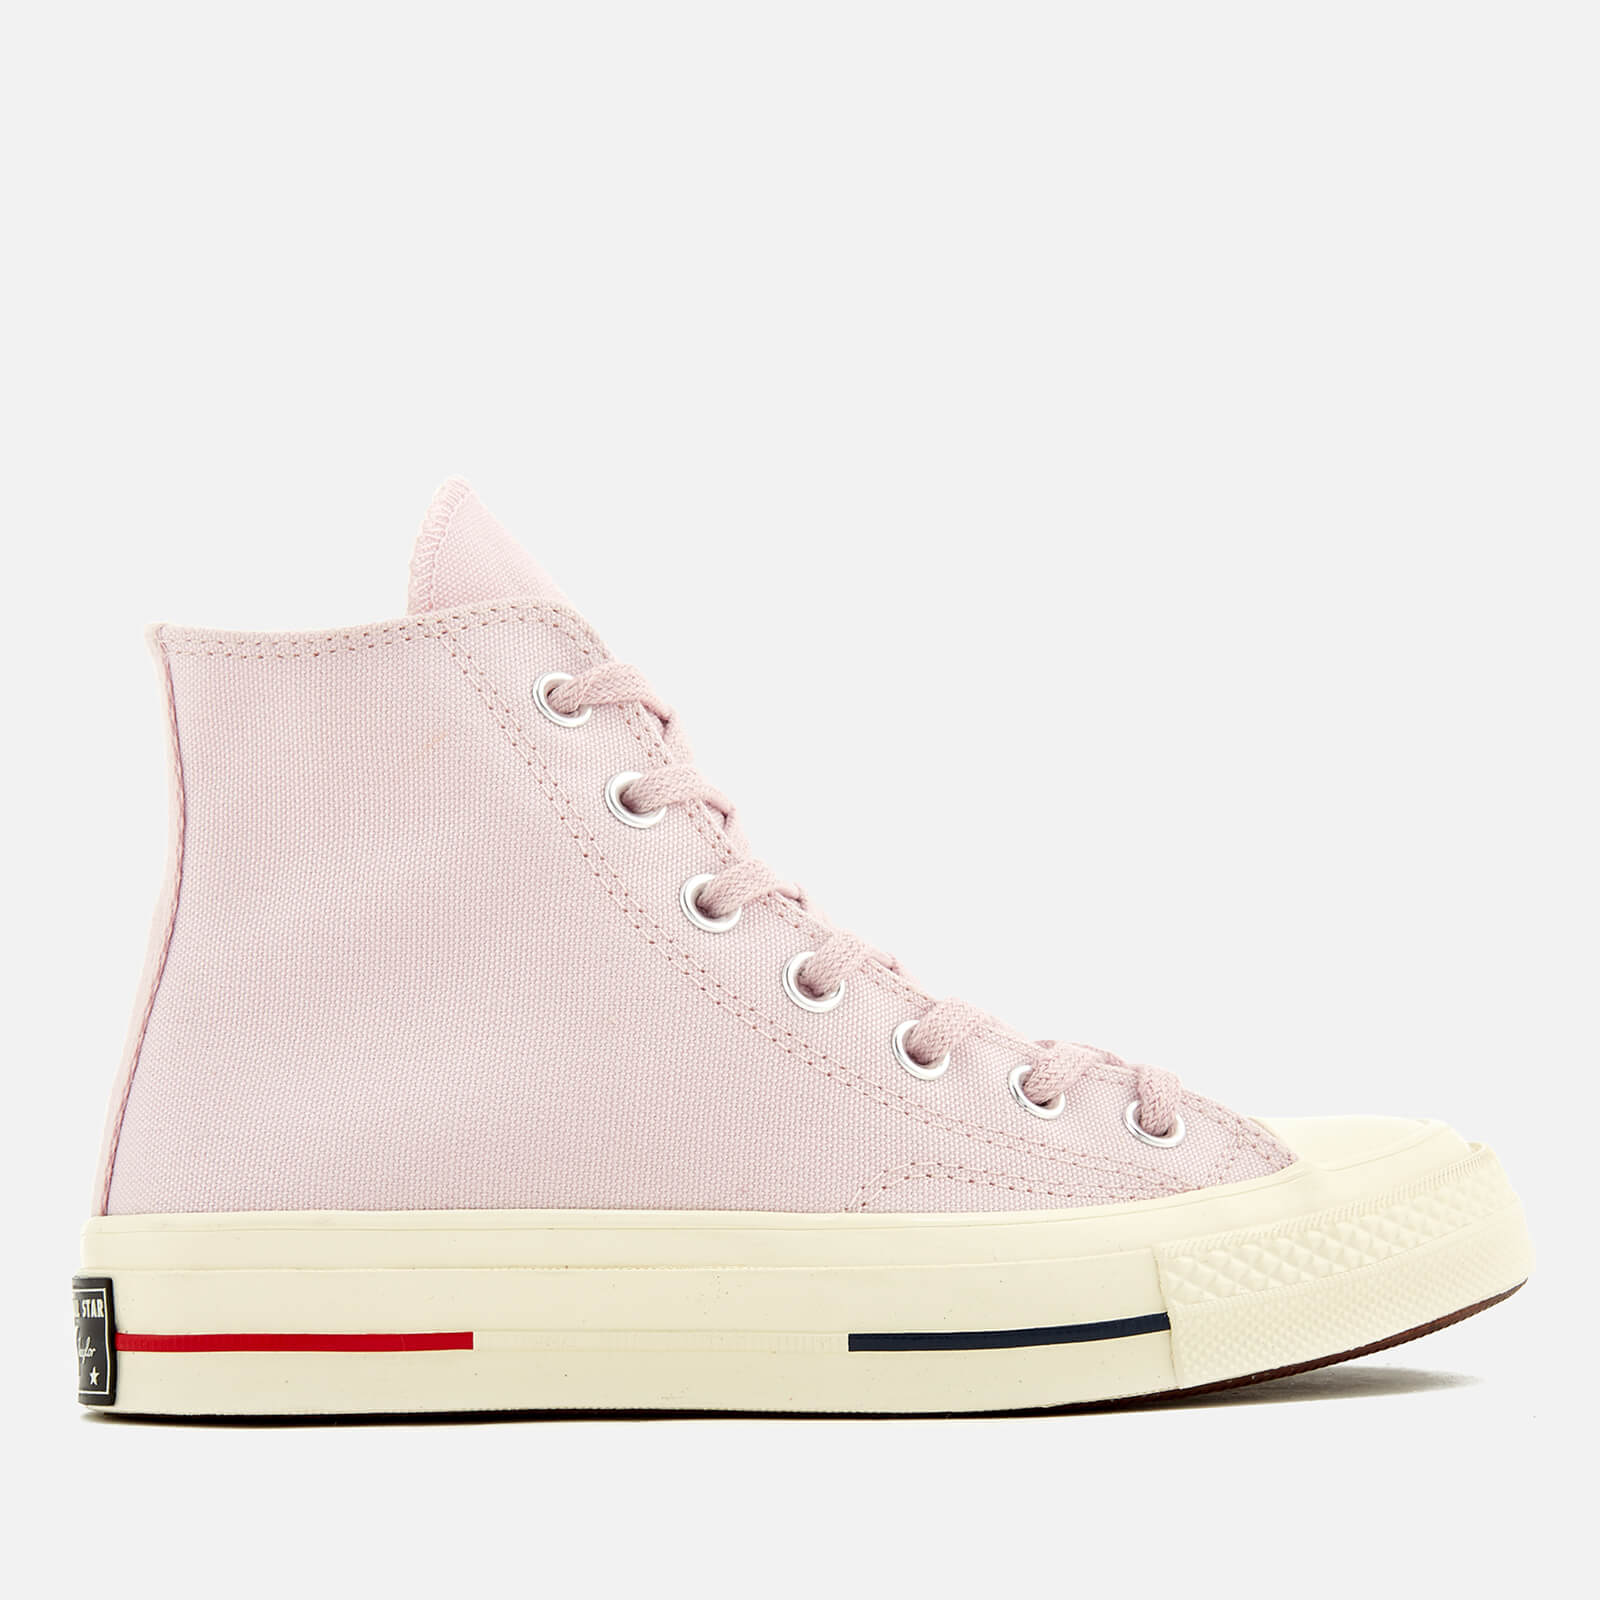 1deebcc2585b Converse Women s Chuck Taylor All Star  70 Hi-Top Trainers - Barely Rose Gym  Red Navy - Free UK Delivery over £50